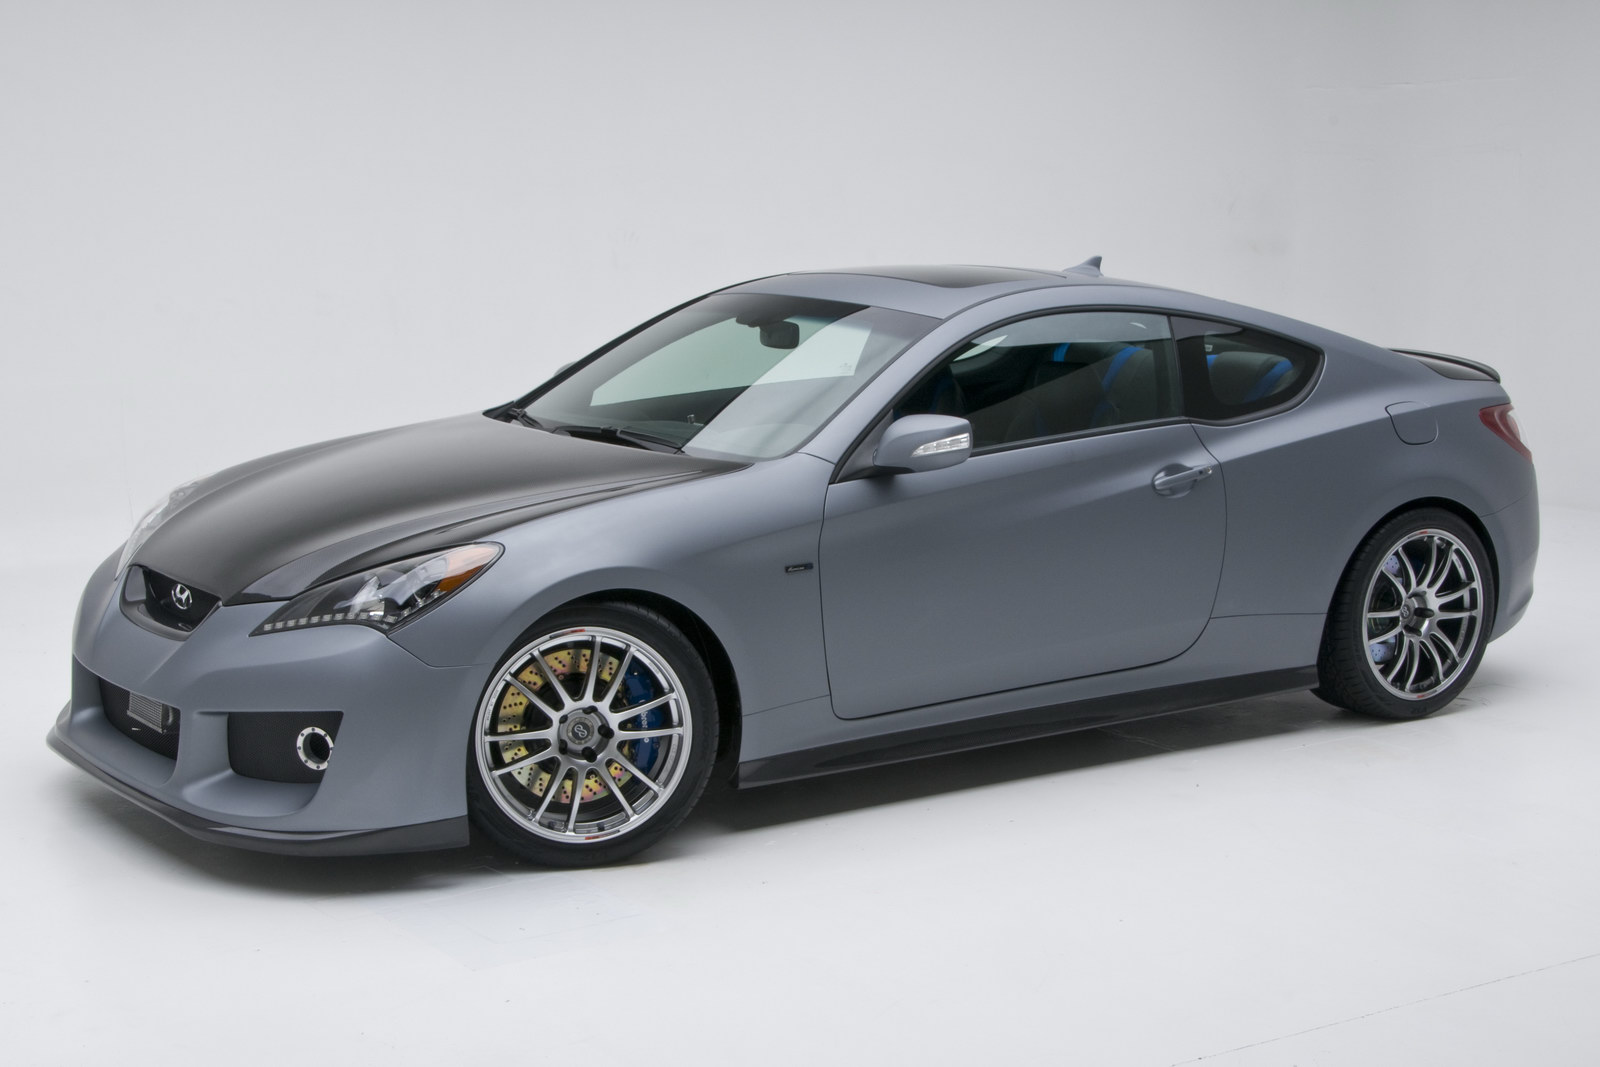 2019 Hyundai Genesis Coupe photo - 5